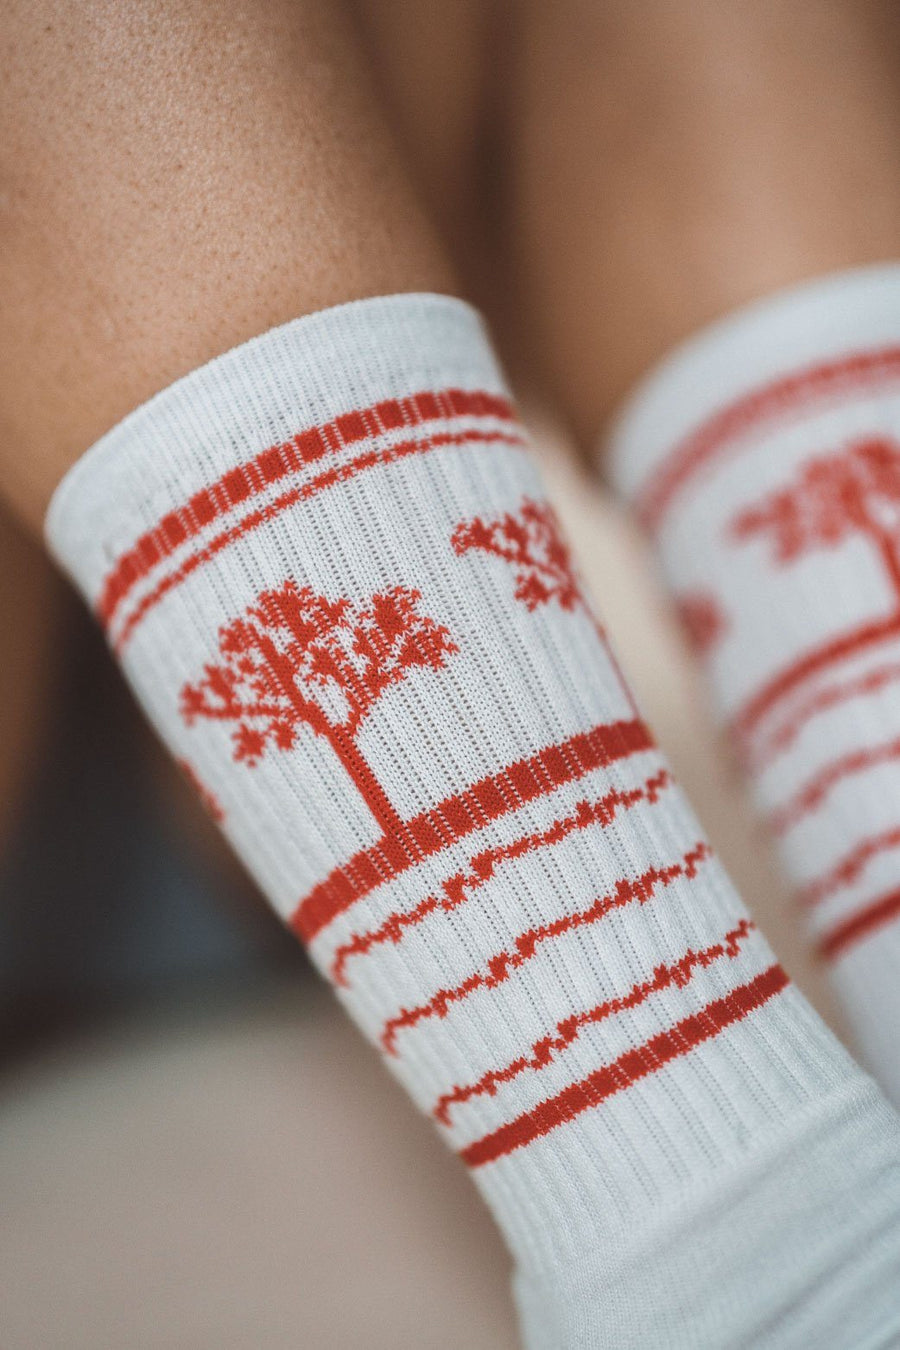 Joshua Tree Socks - Wondery, A Parks Apparel Brand